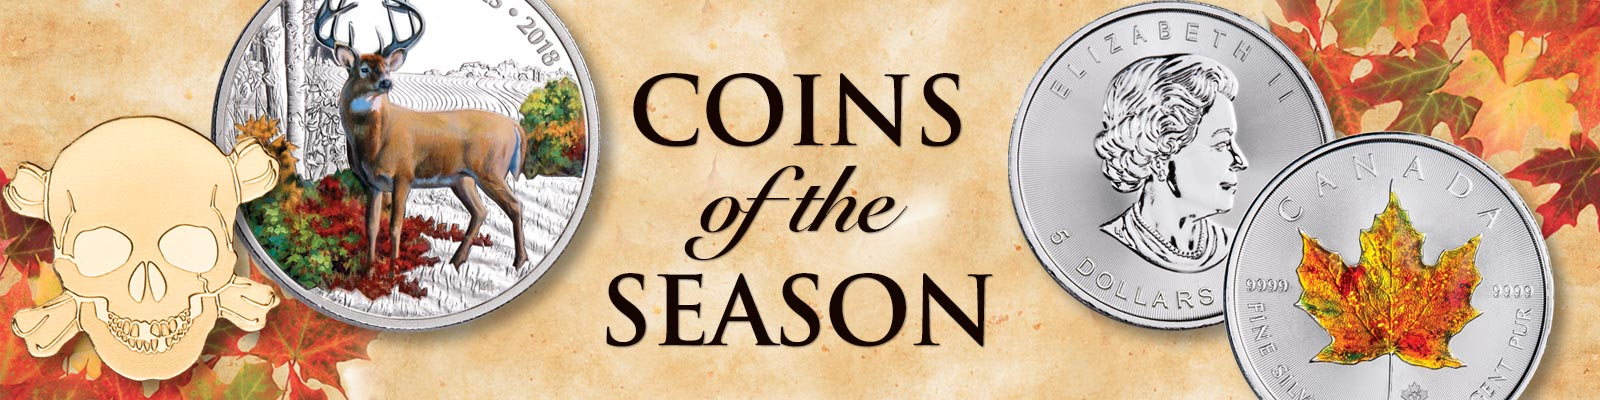 Coins of the Season